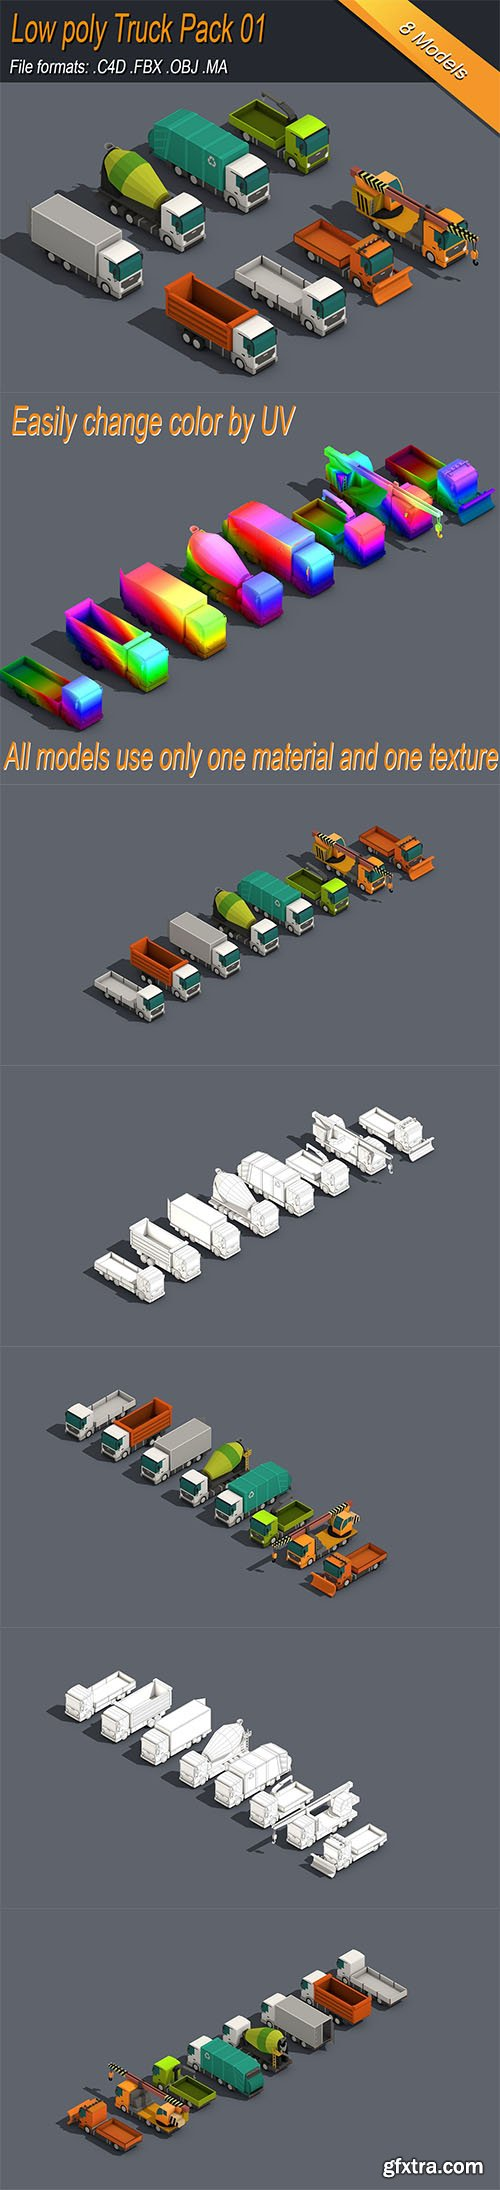 Cgtrader - Low Poly Truck Pack 01 Isometric Low-poly 3D model